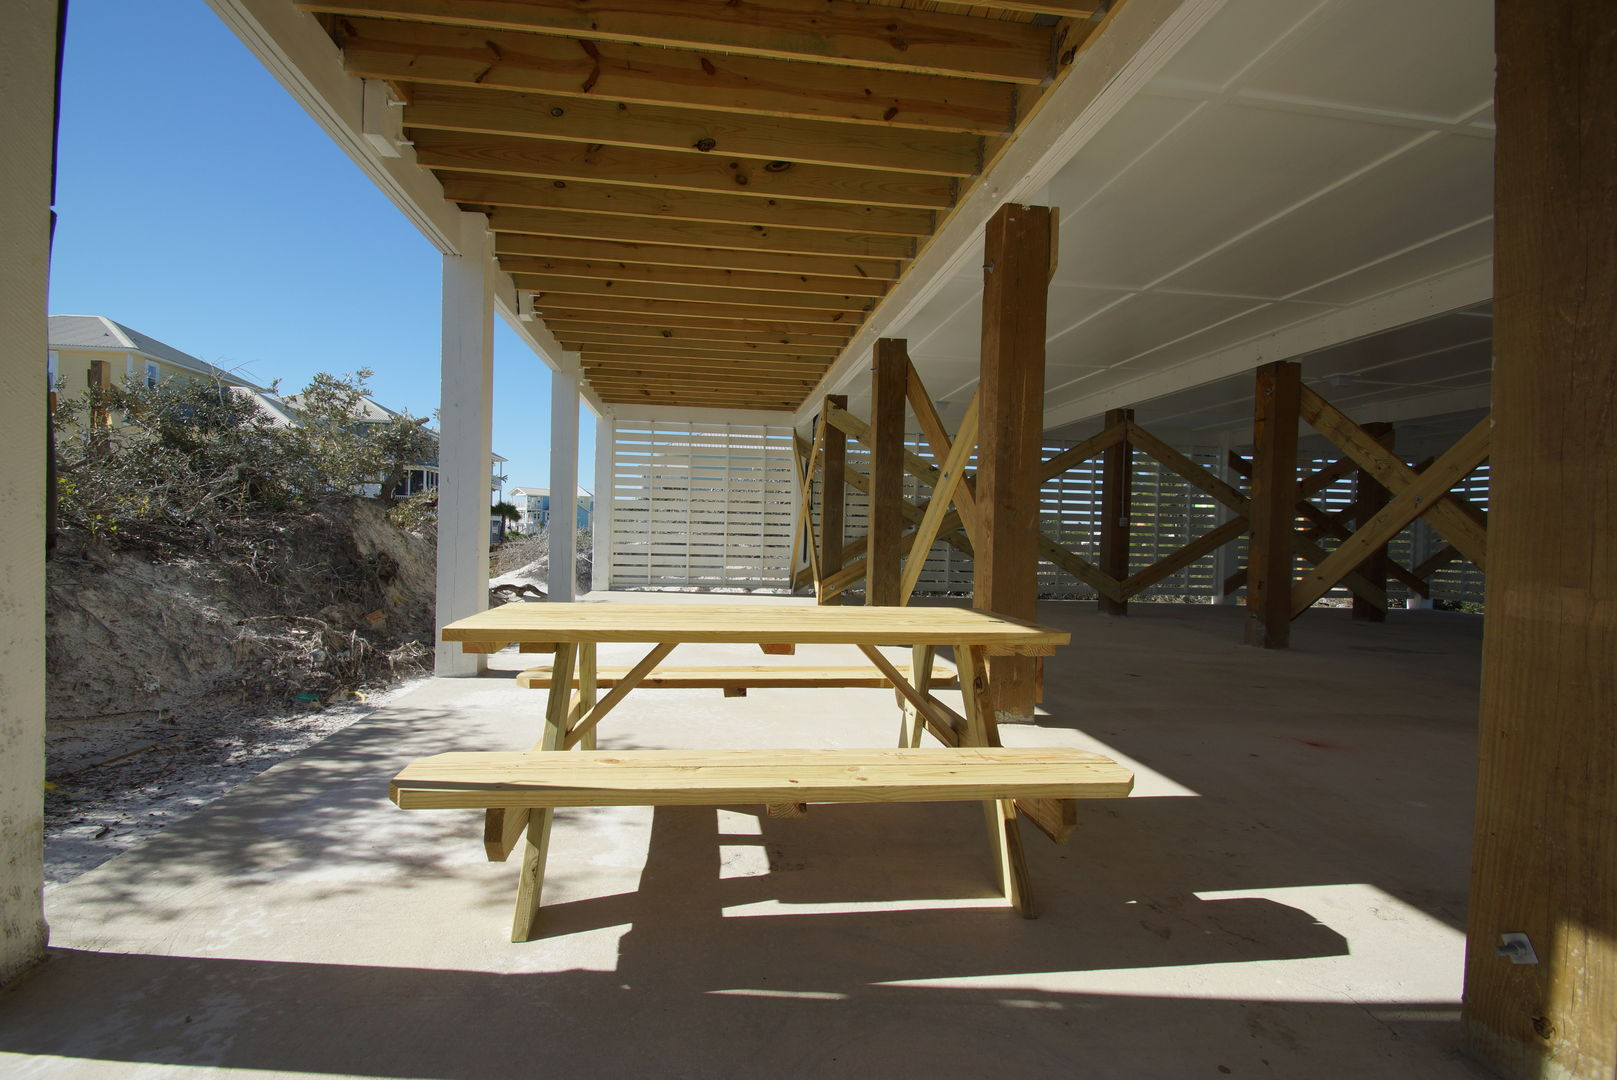 Covered carport with picnic table for dining.